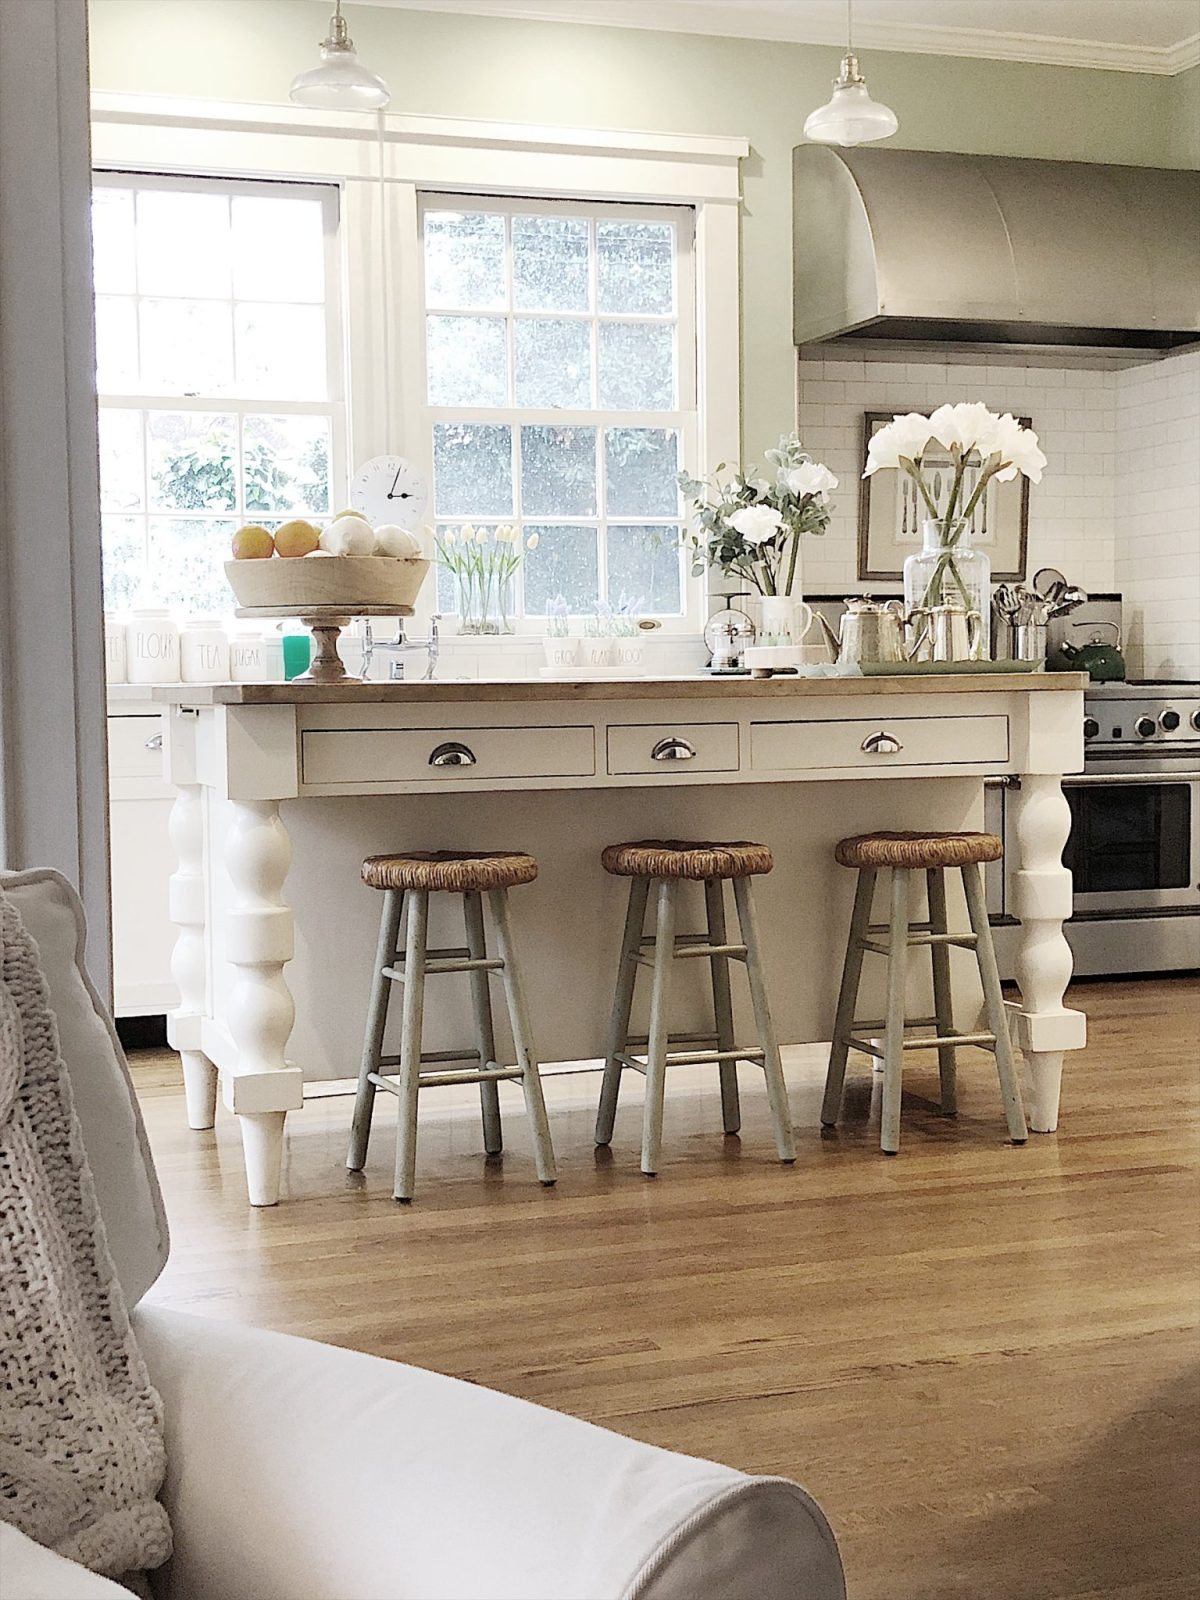 Styling The Kitchen For The Winter Season